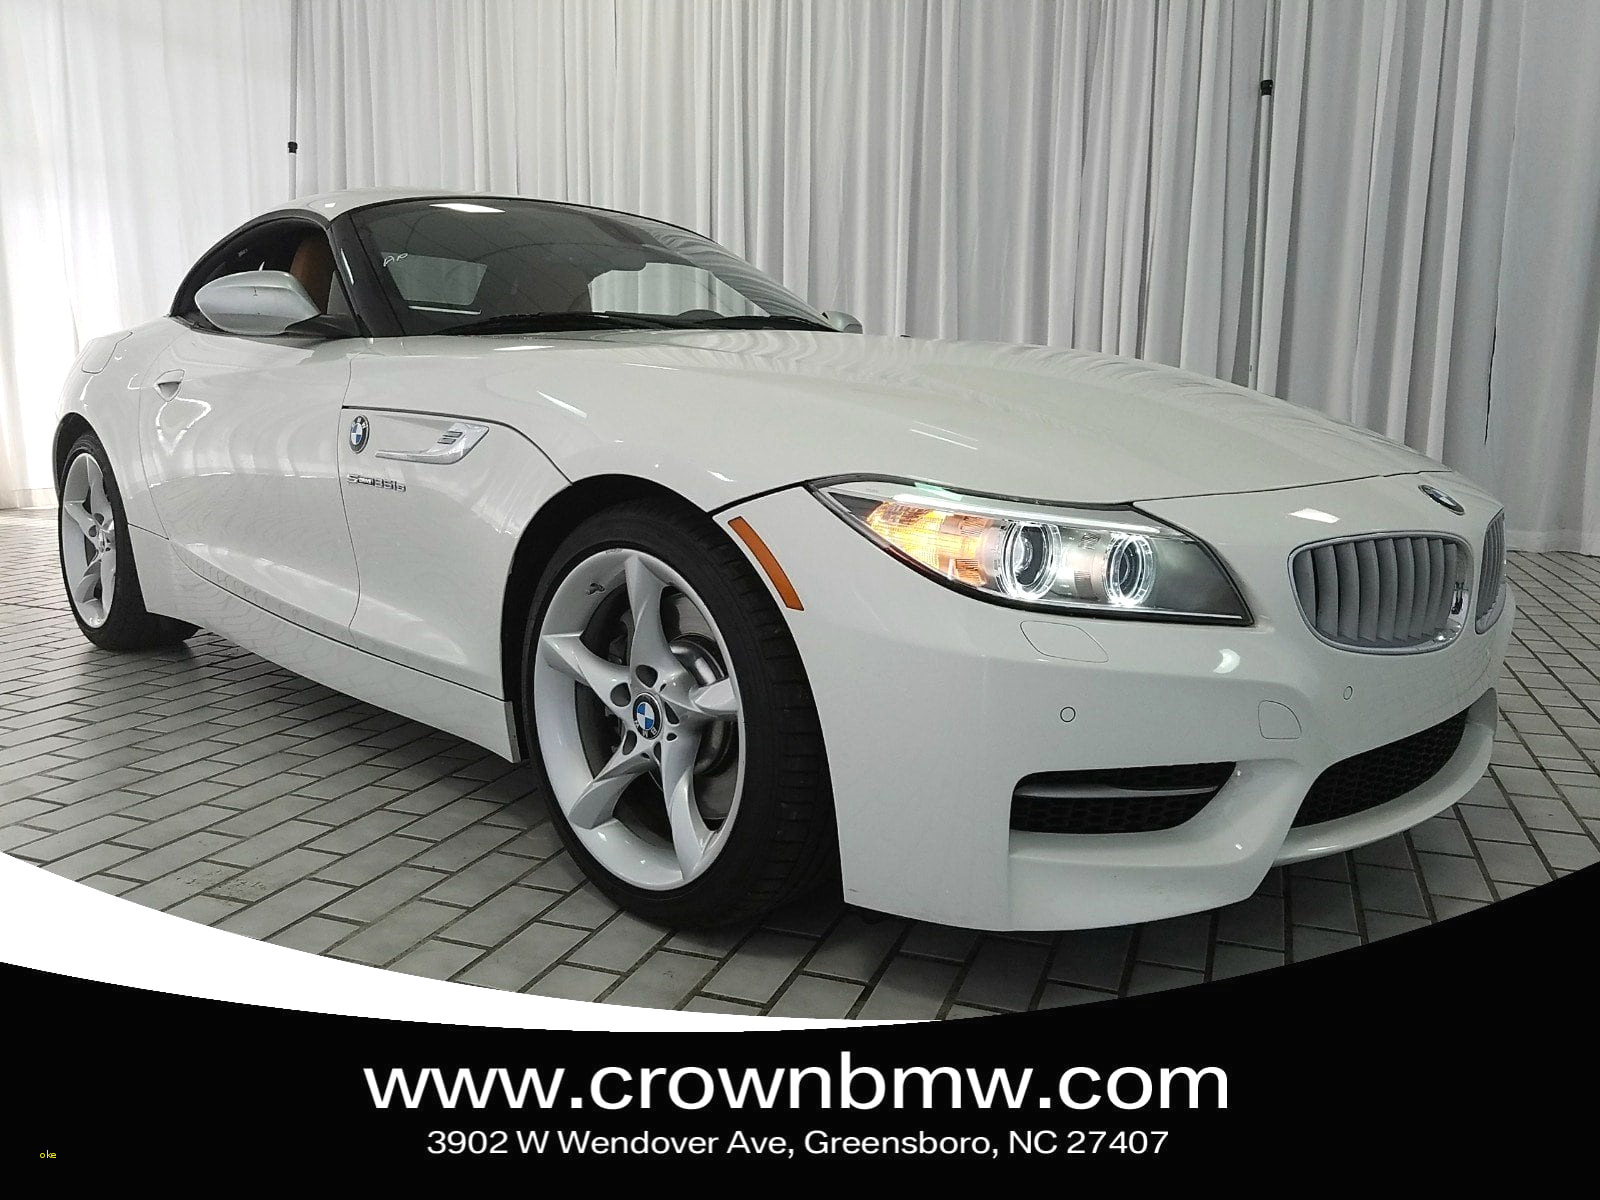 used cars greensboro lovely crown bmw greensboro used cars best of luxury used car specials in. Black Bedroom Furniture Sets. Home Design Ideas